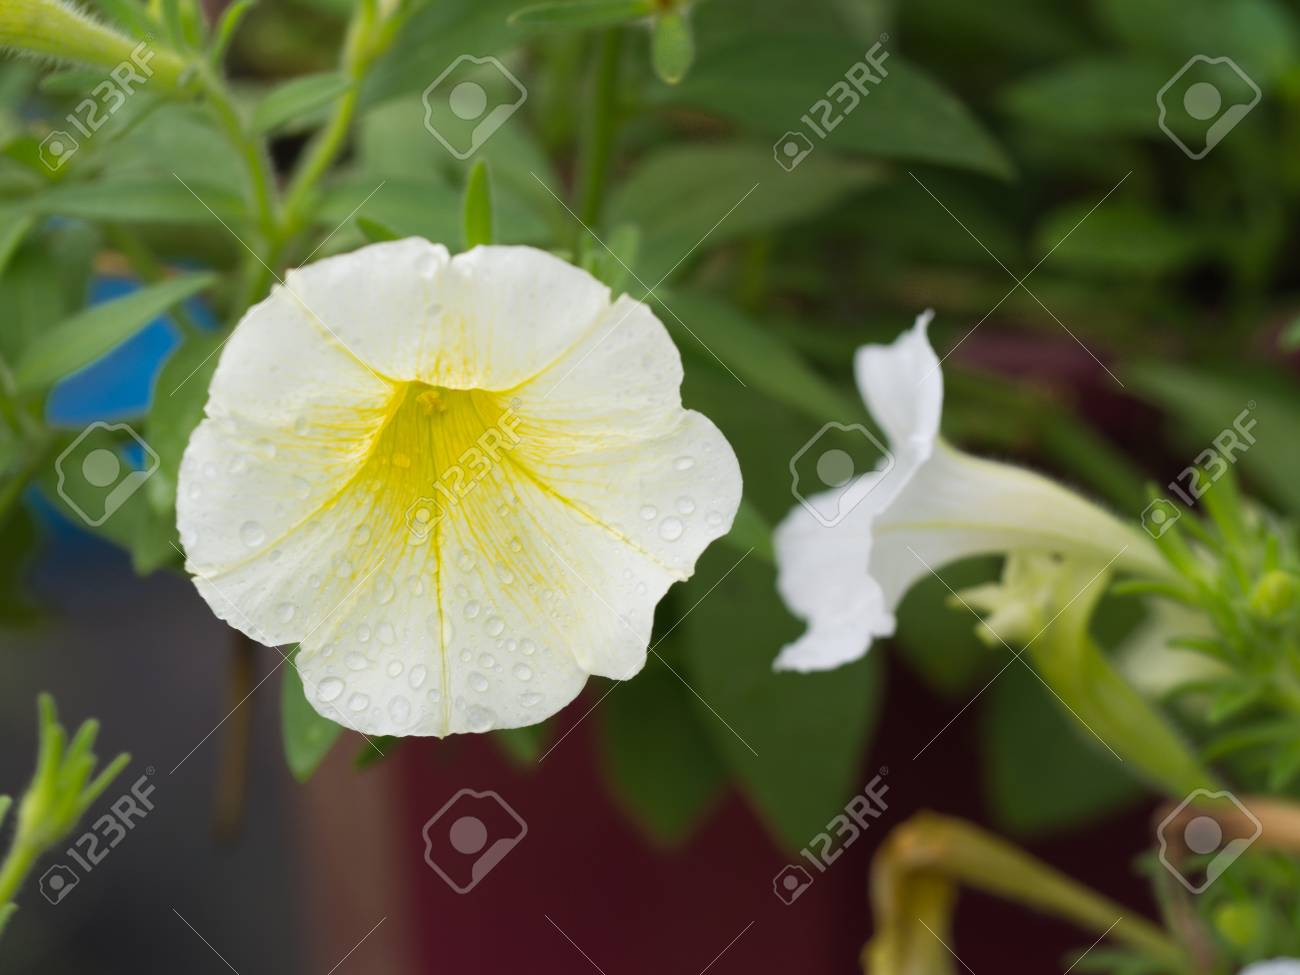 Rain Drops On The White Yellow Petunia Flower Hanging In The Stock